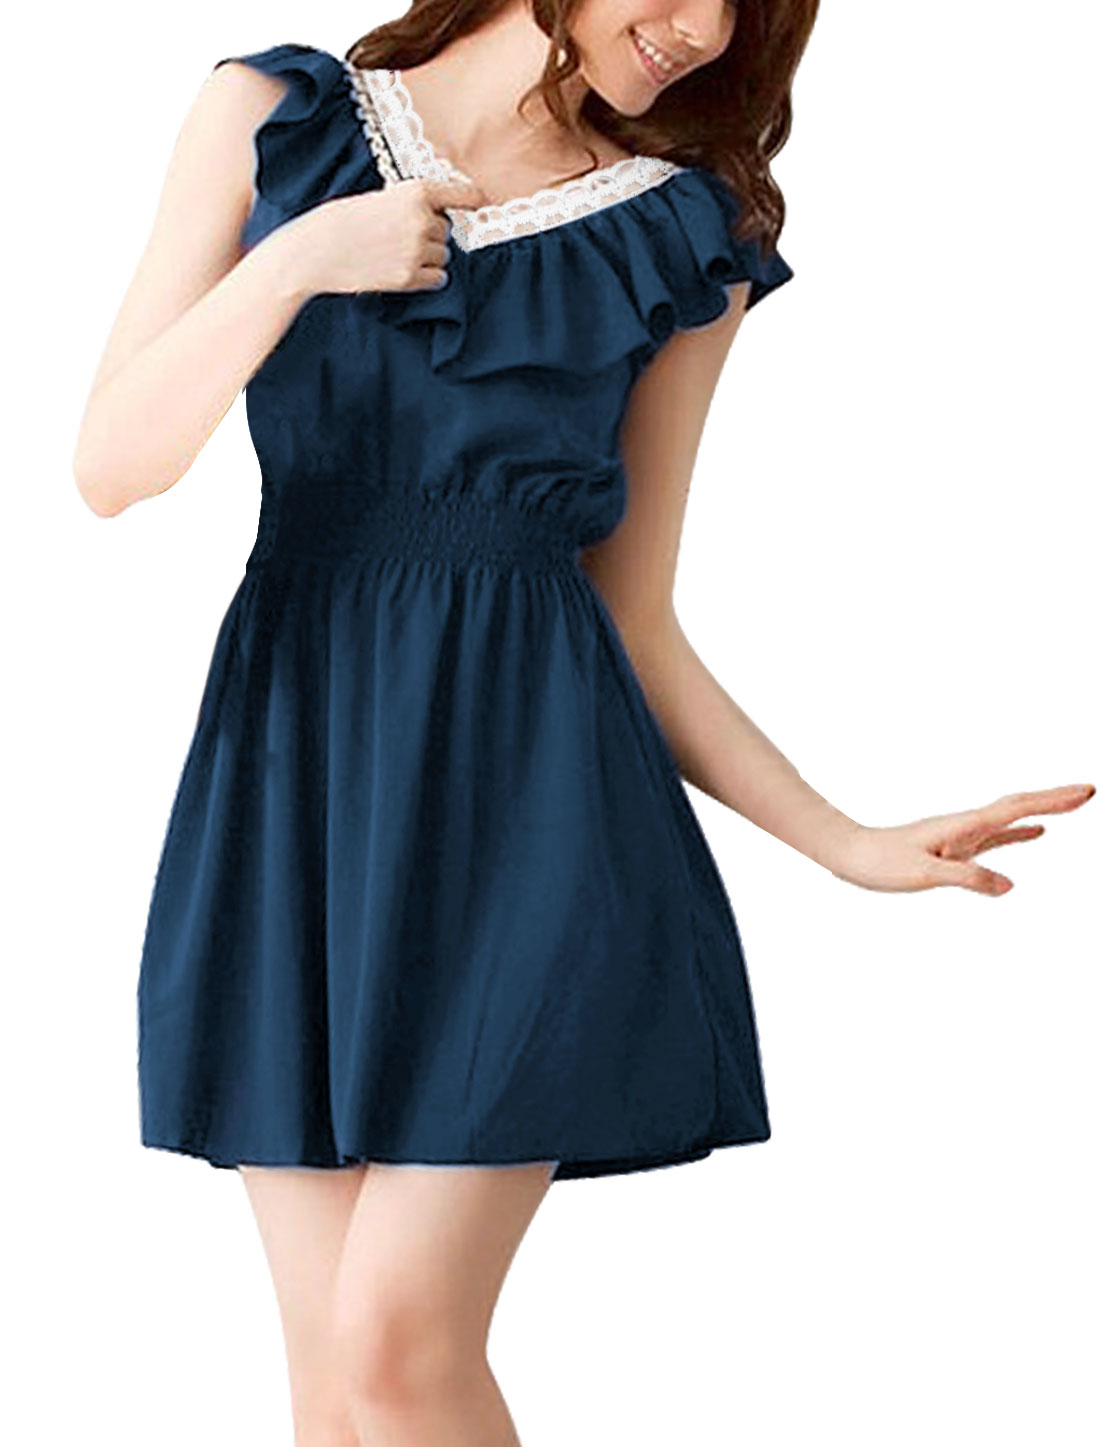 Woman New Fashion Elastic Smocked Waist Design Dark Blue Mini Dress XL